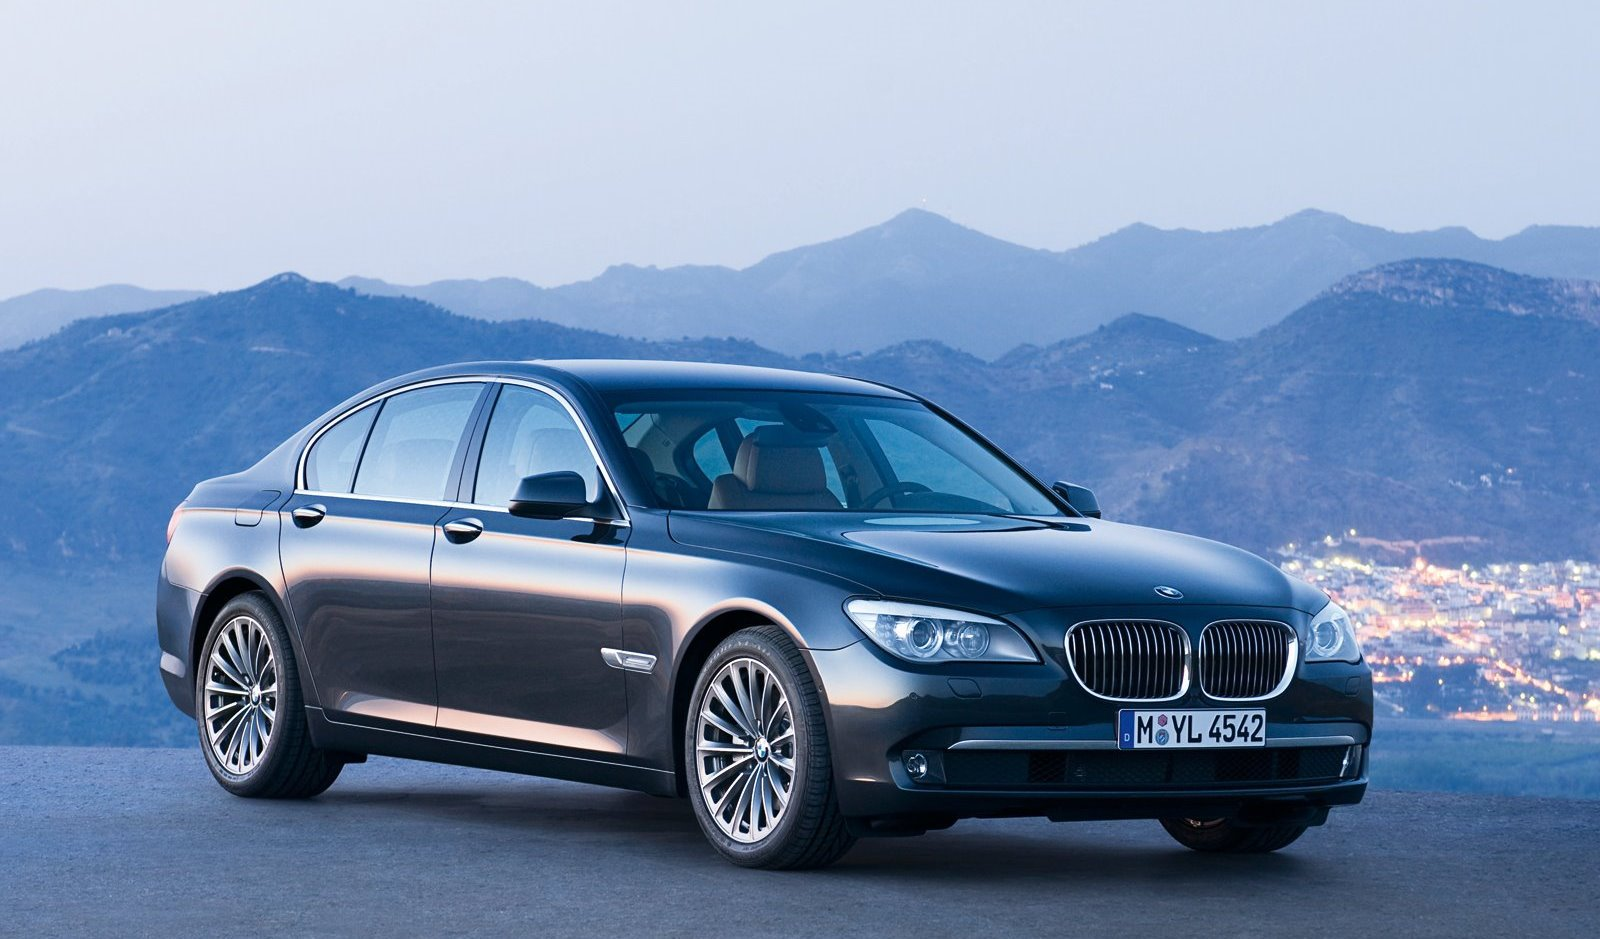 BMW 7 Series 2015 Exterior Front Side View